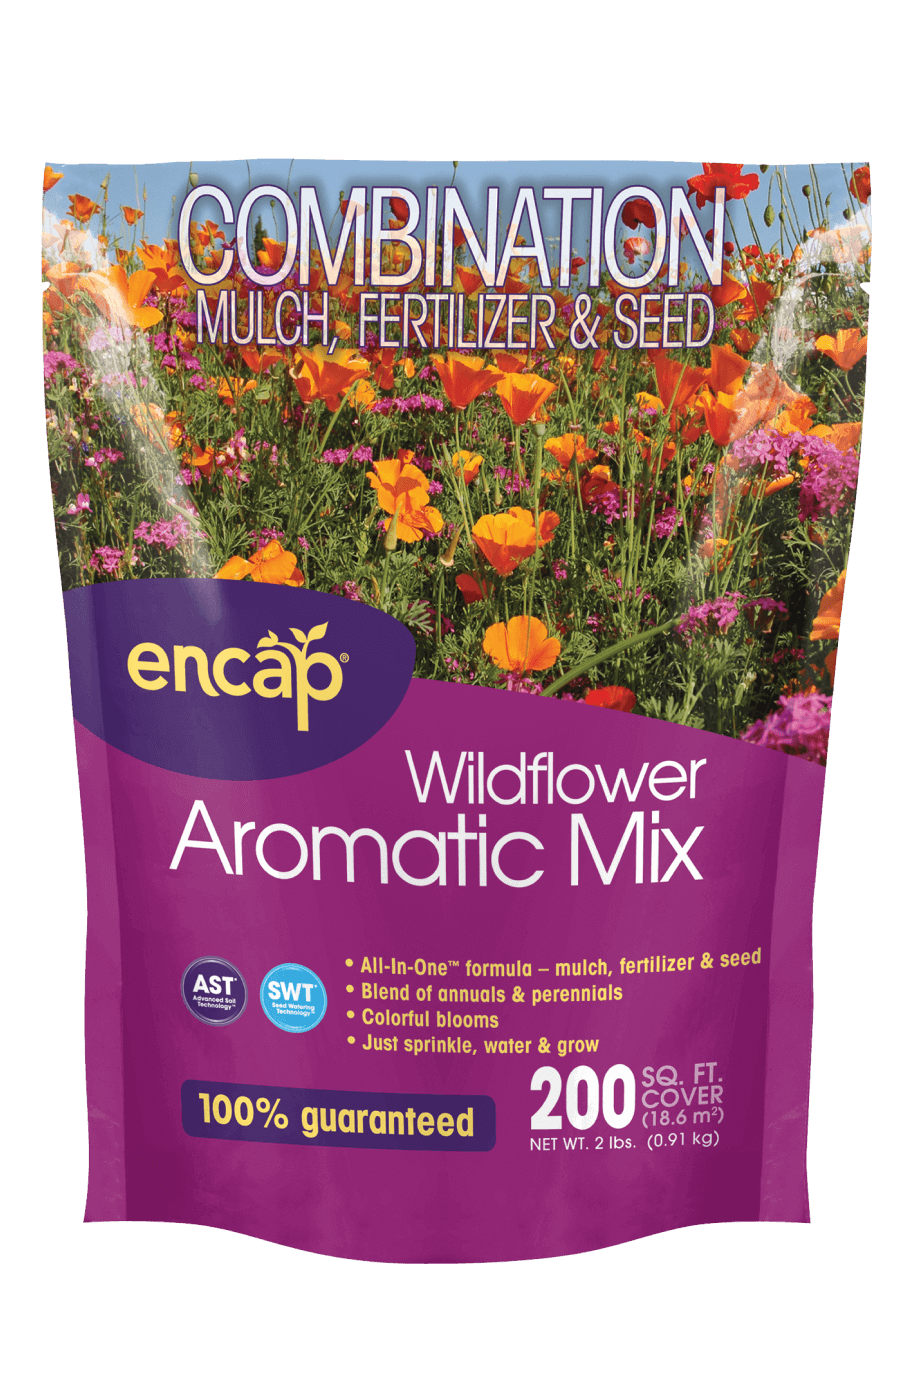 Wildflower Aromatic Mix Package